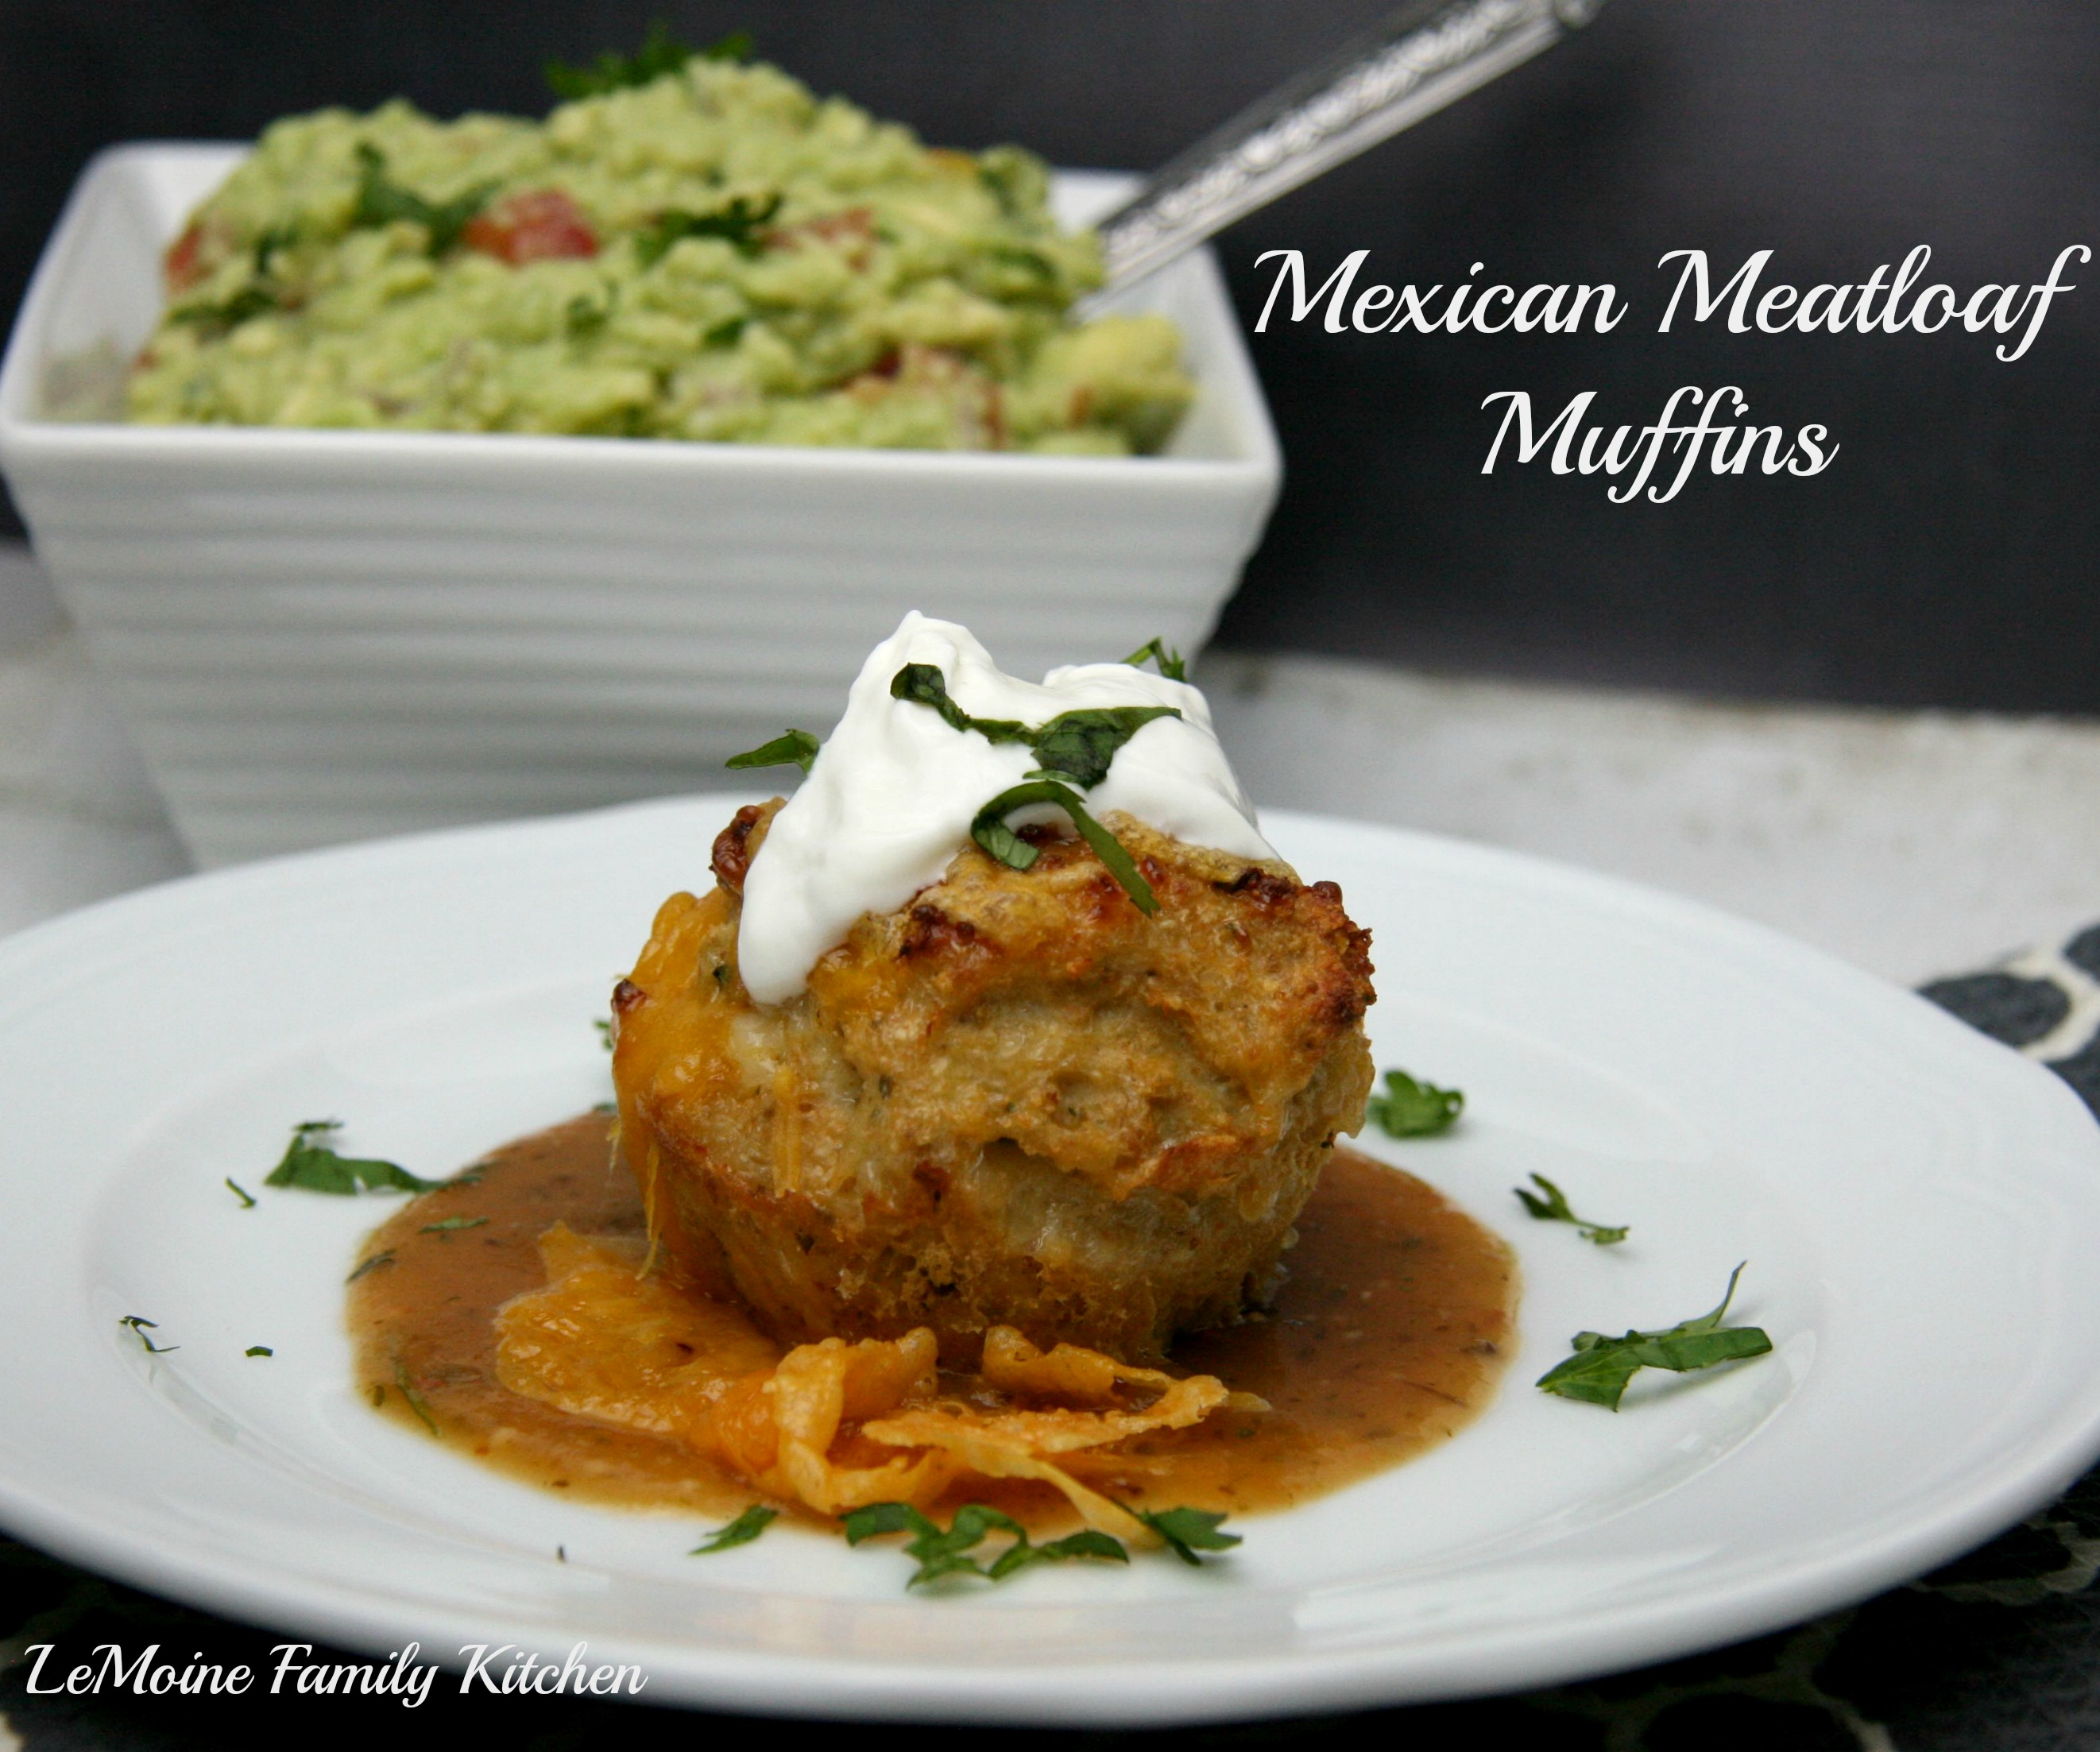 Mexican Meatloaf Muffins